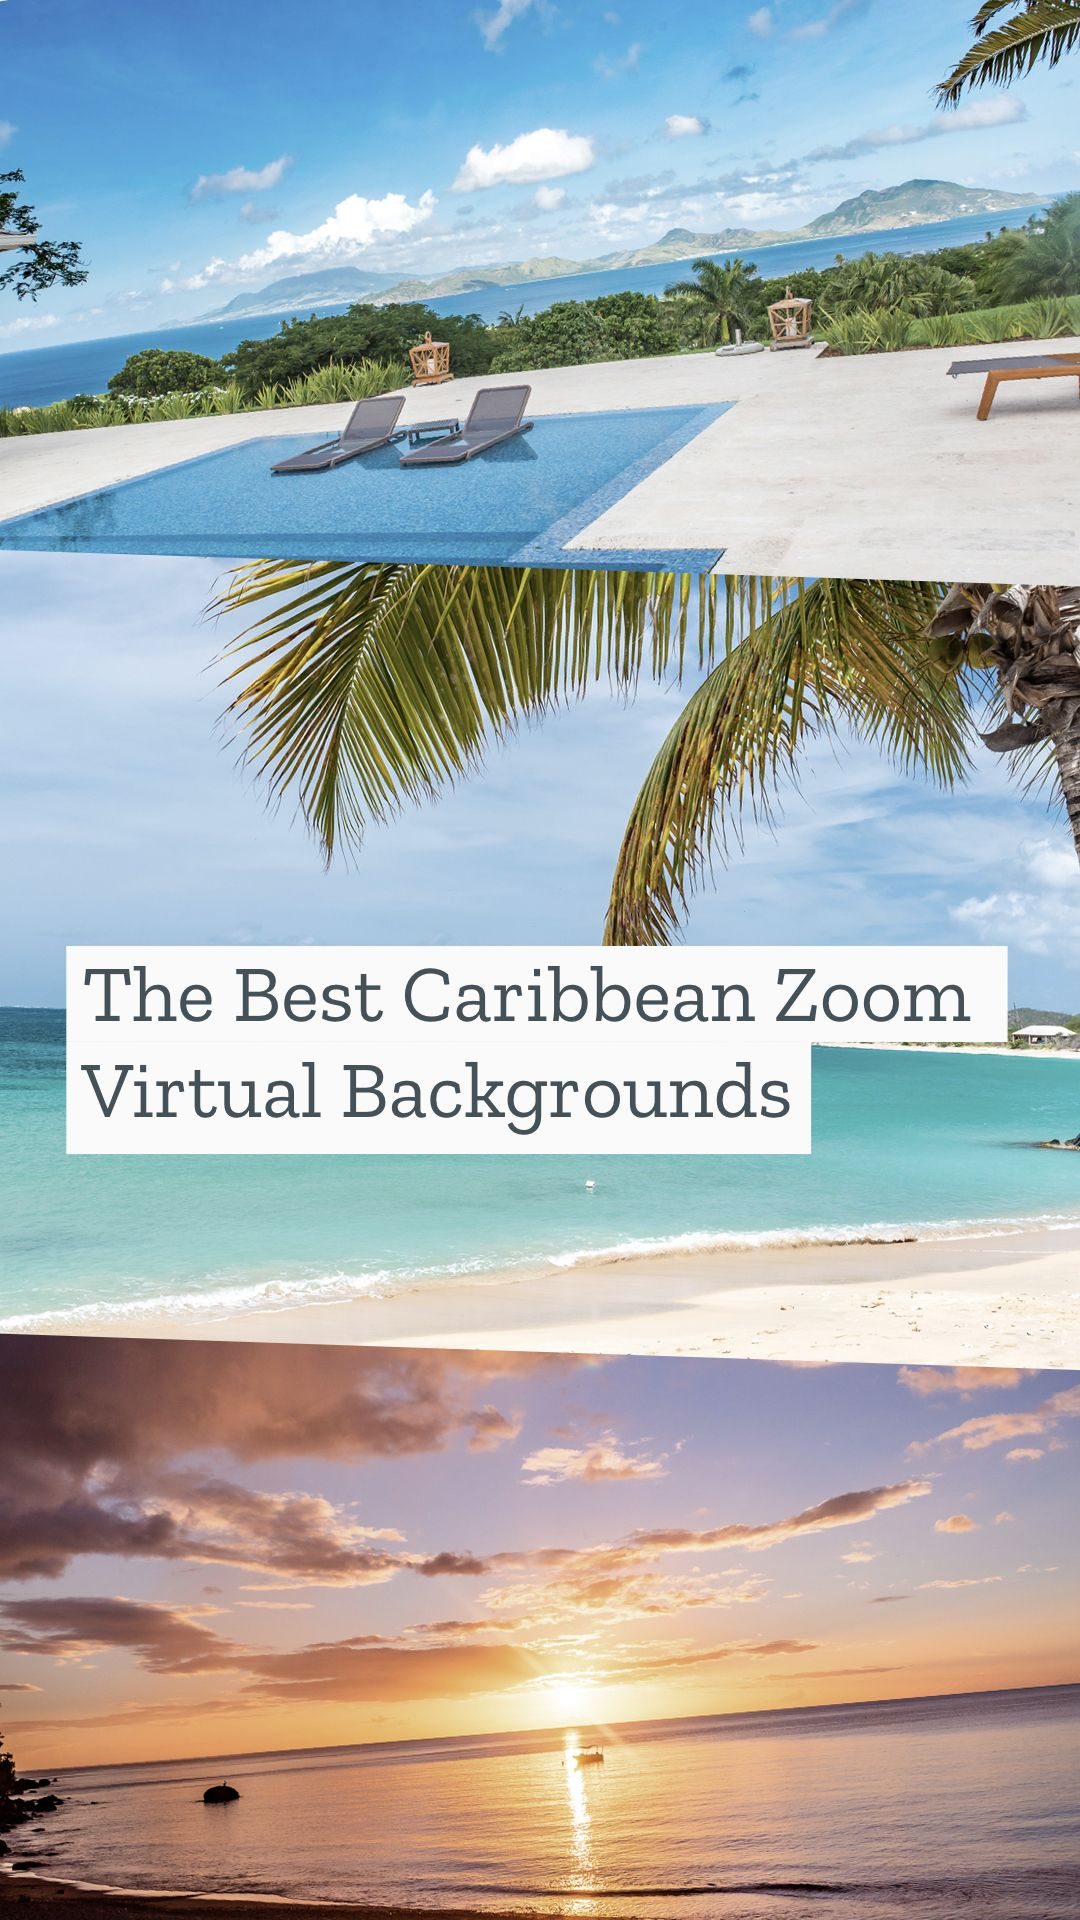 Caribbean Zoom Virtual Backgrounds Make Boring Meetings Better In 2020 Cancun Mexico Travel Caribbean Beach Background